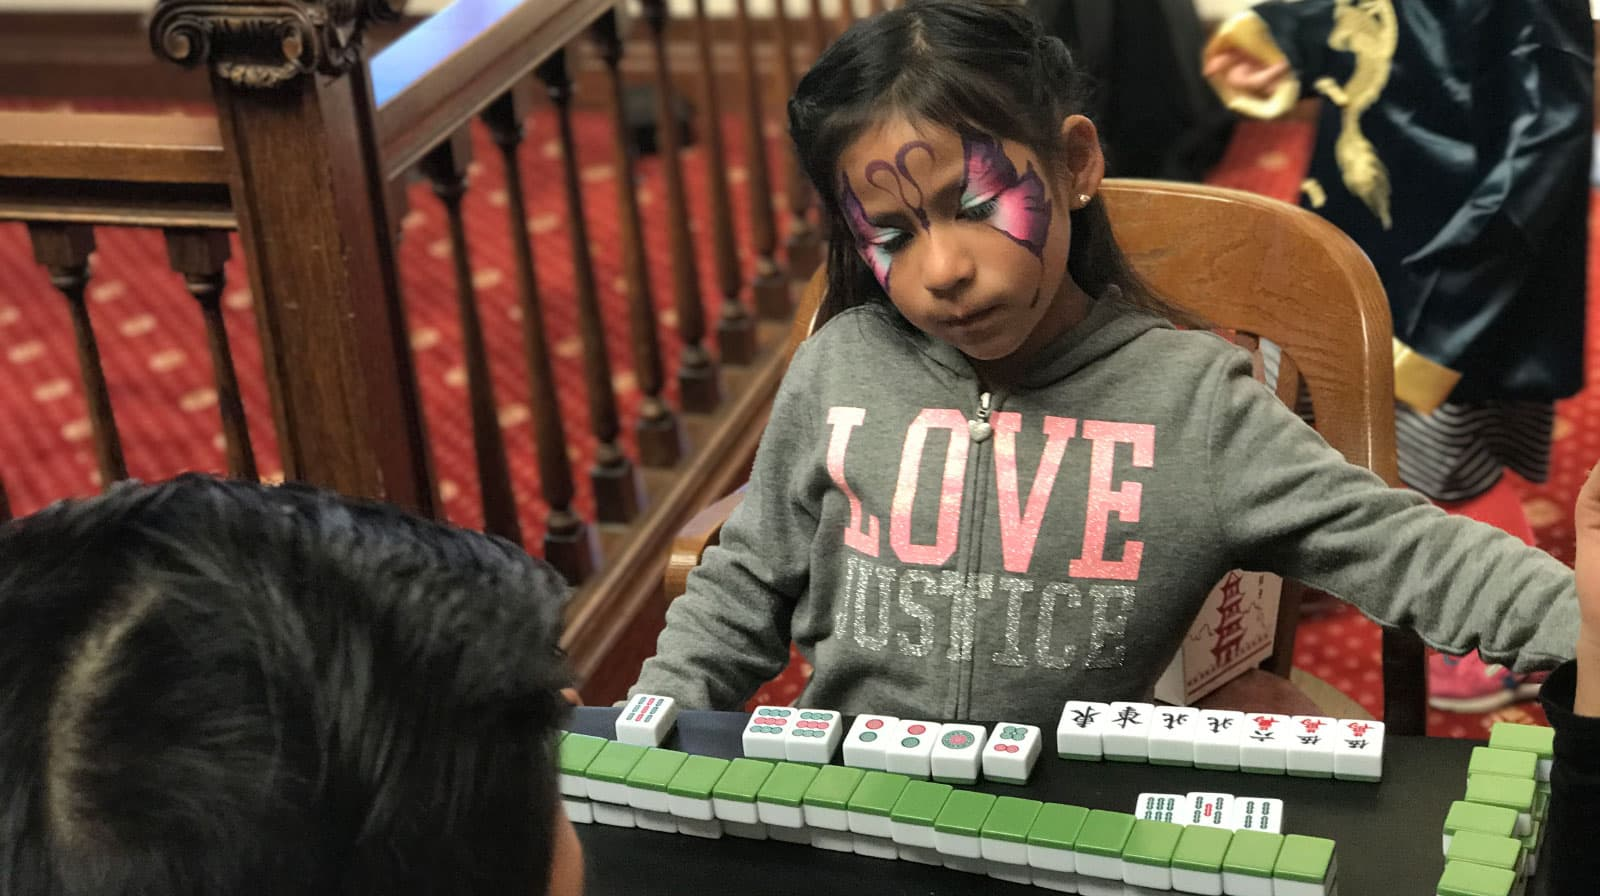 A young girl with butterfly face paint learns mahjong at the lunar new year celebration at the San Mateo County History Museum